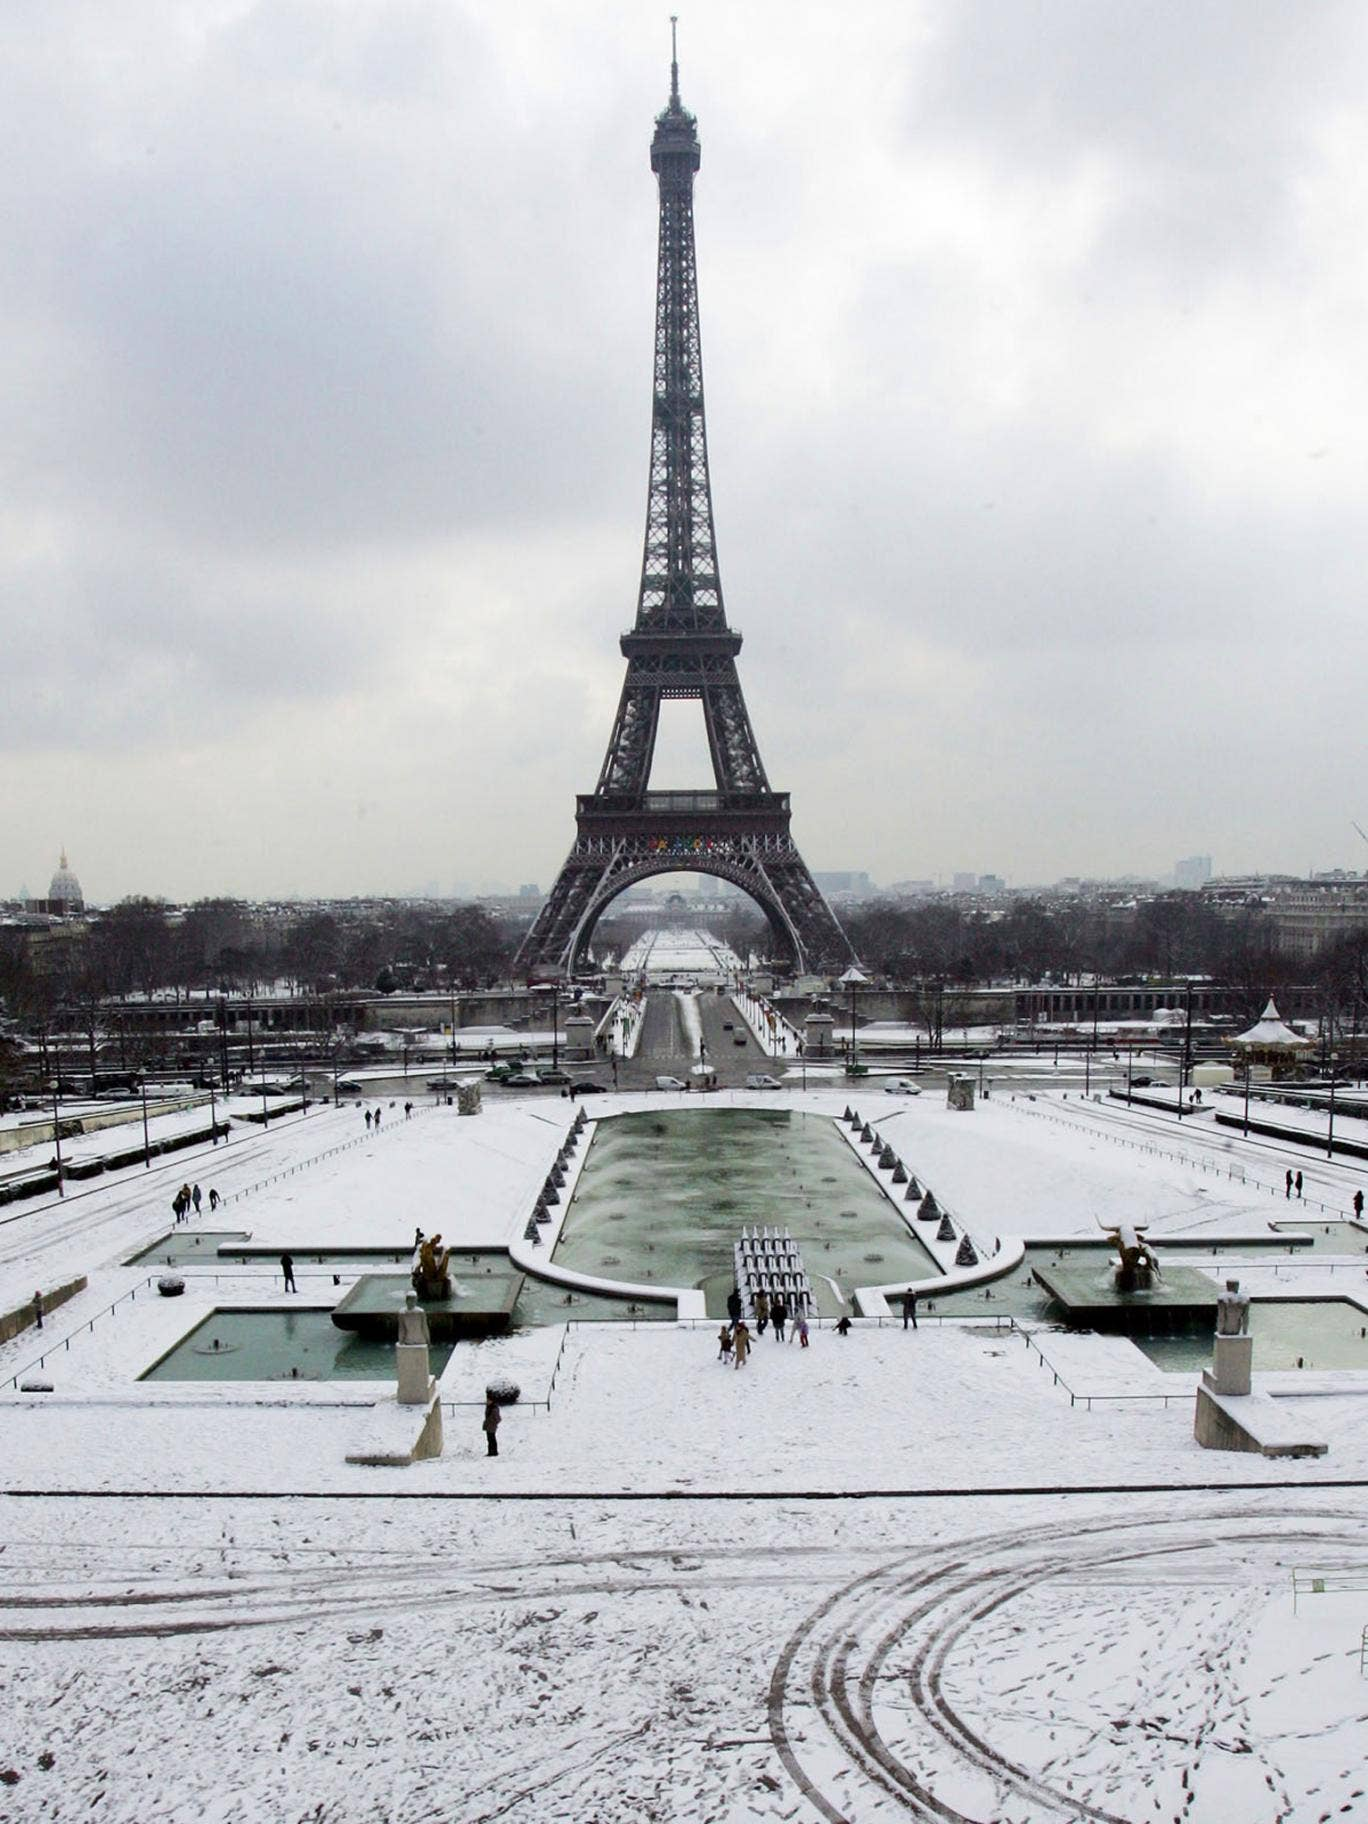 Snow covers the Trocadero gardens in front of the Eiffel Tower in Paris